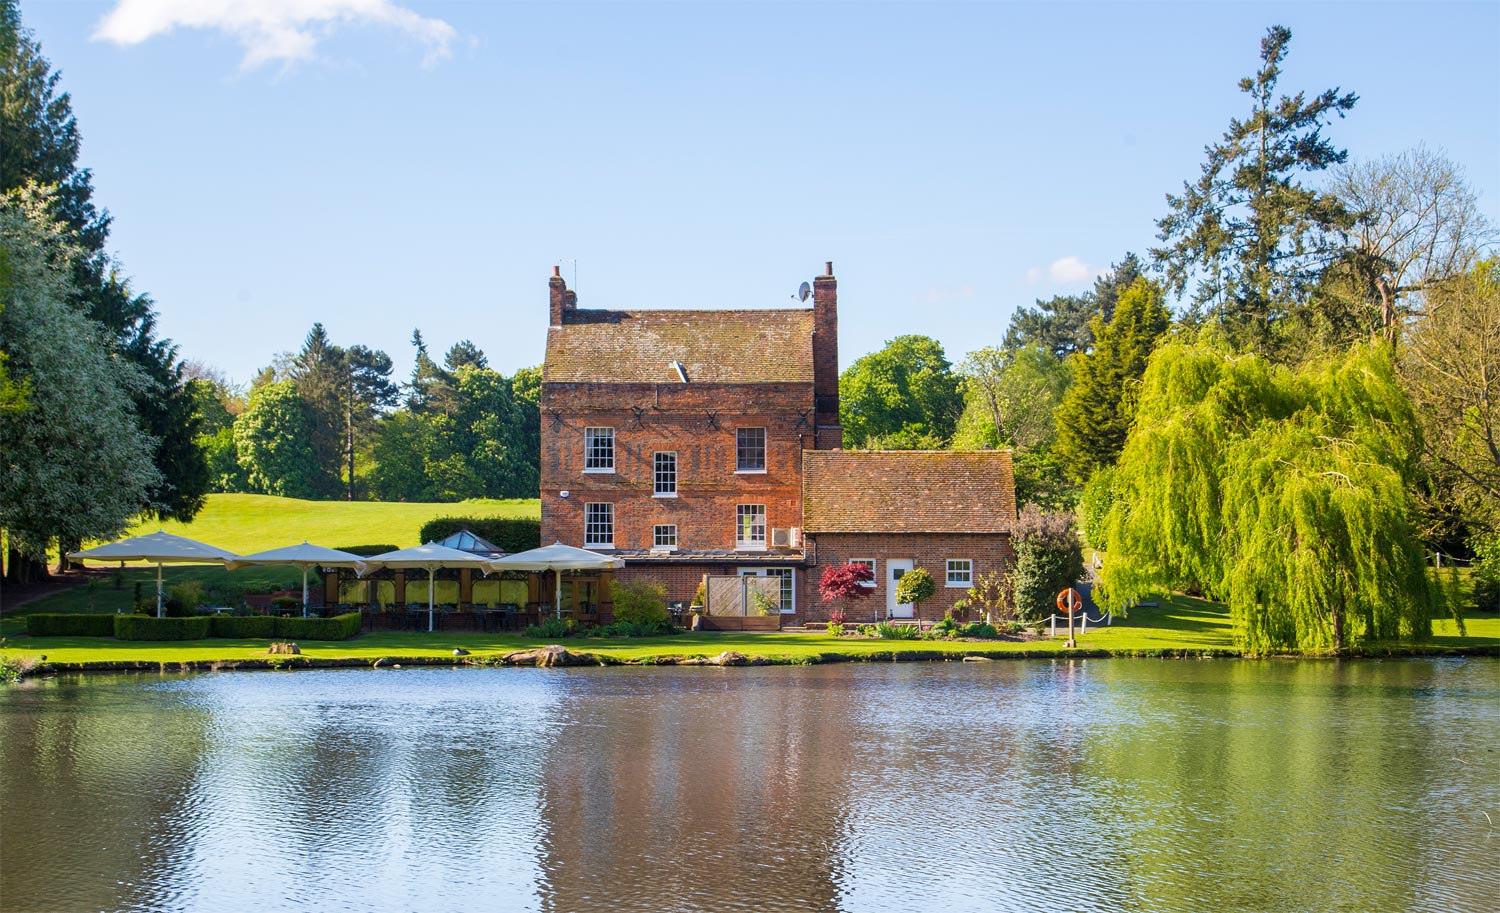 A Glimpse Of Brocket Hall From Melbourne Lodge